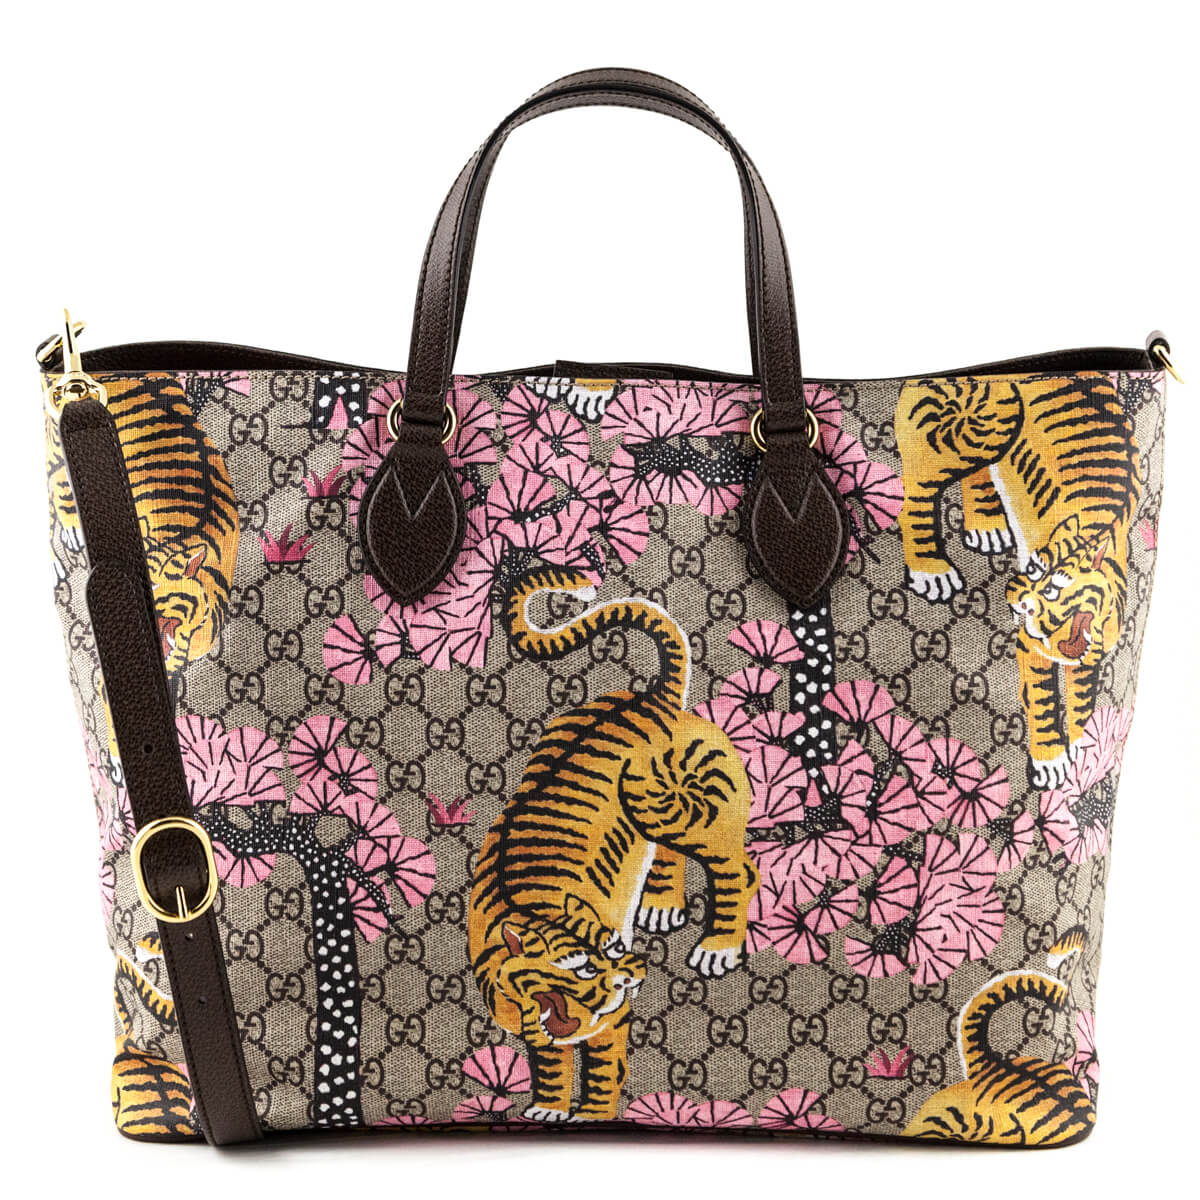 4ae13d62560c Gucci GG Supreme Soft Bengal Tote - LOVE that BAG - Preowned Authentic  Designer Handbags ...